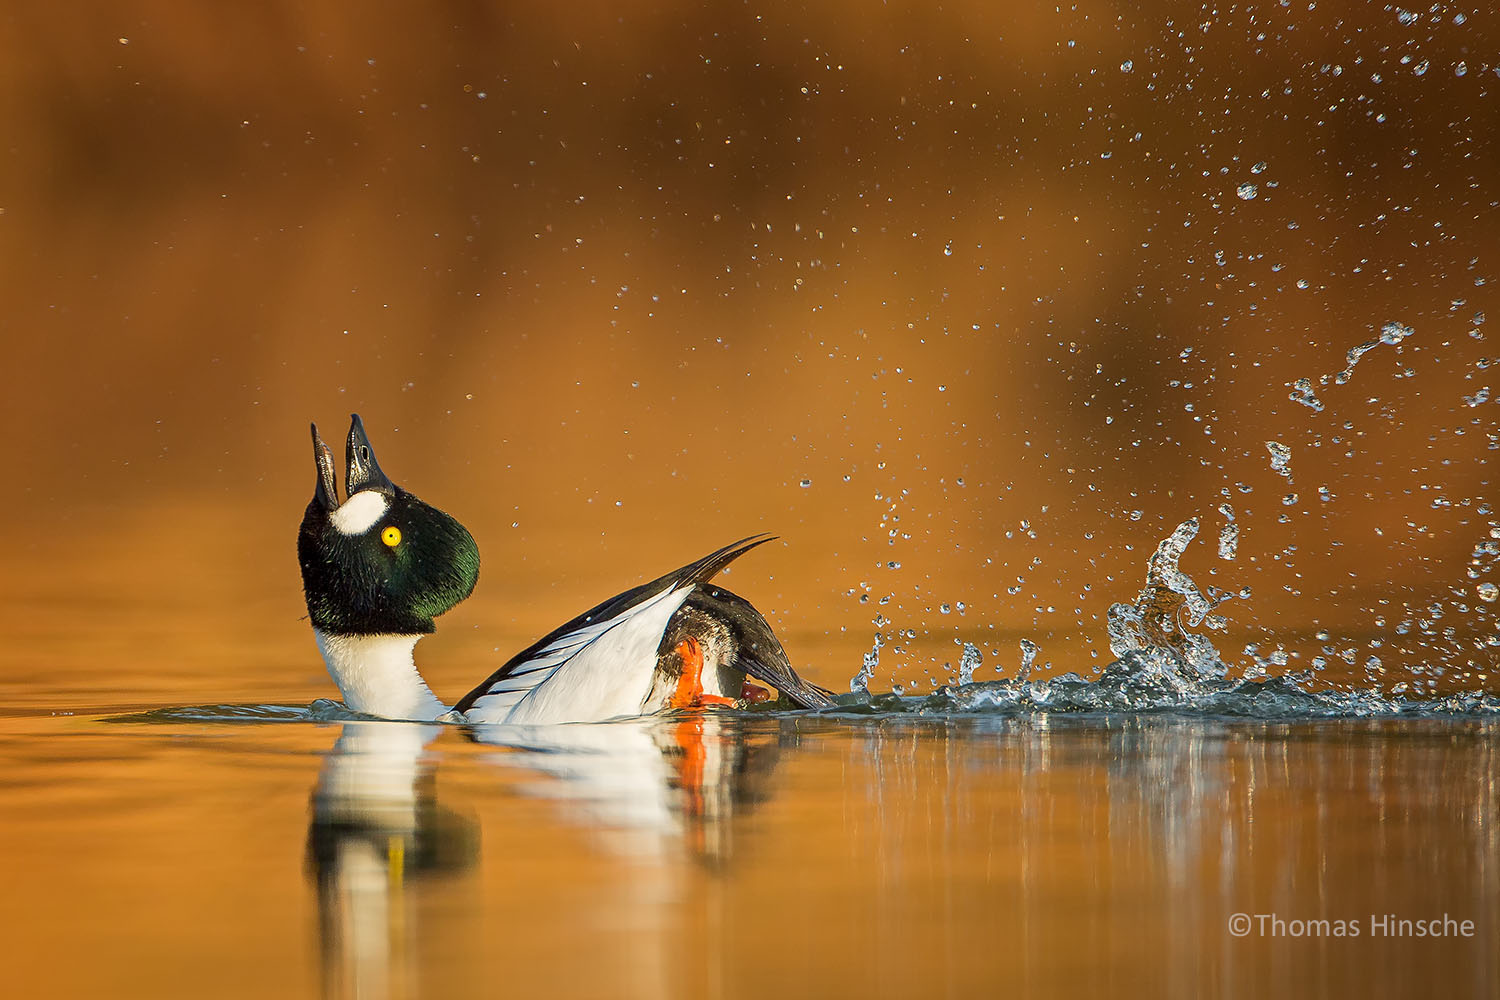 This stunning image of a Goldeneye by Thomas Hinsche is just one of the hundreds of amazing images that grace the BPOTY 2019 shortlist. The judges will have a difficult task in selecting the winning images from such accomplished entries.